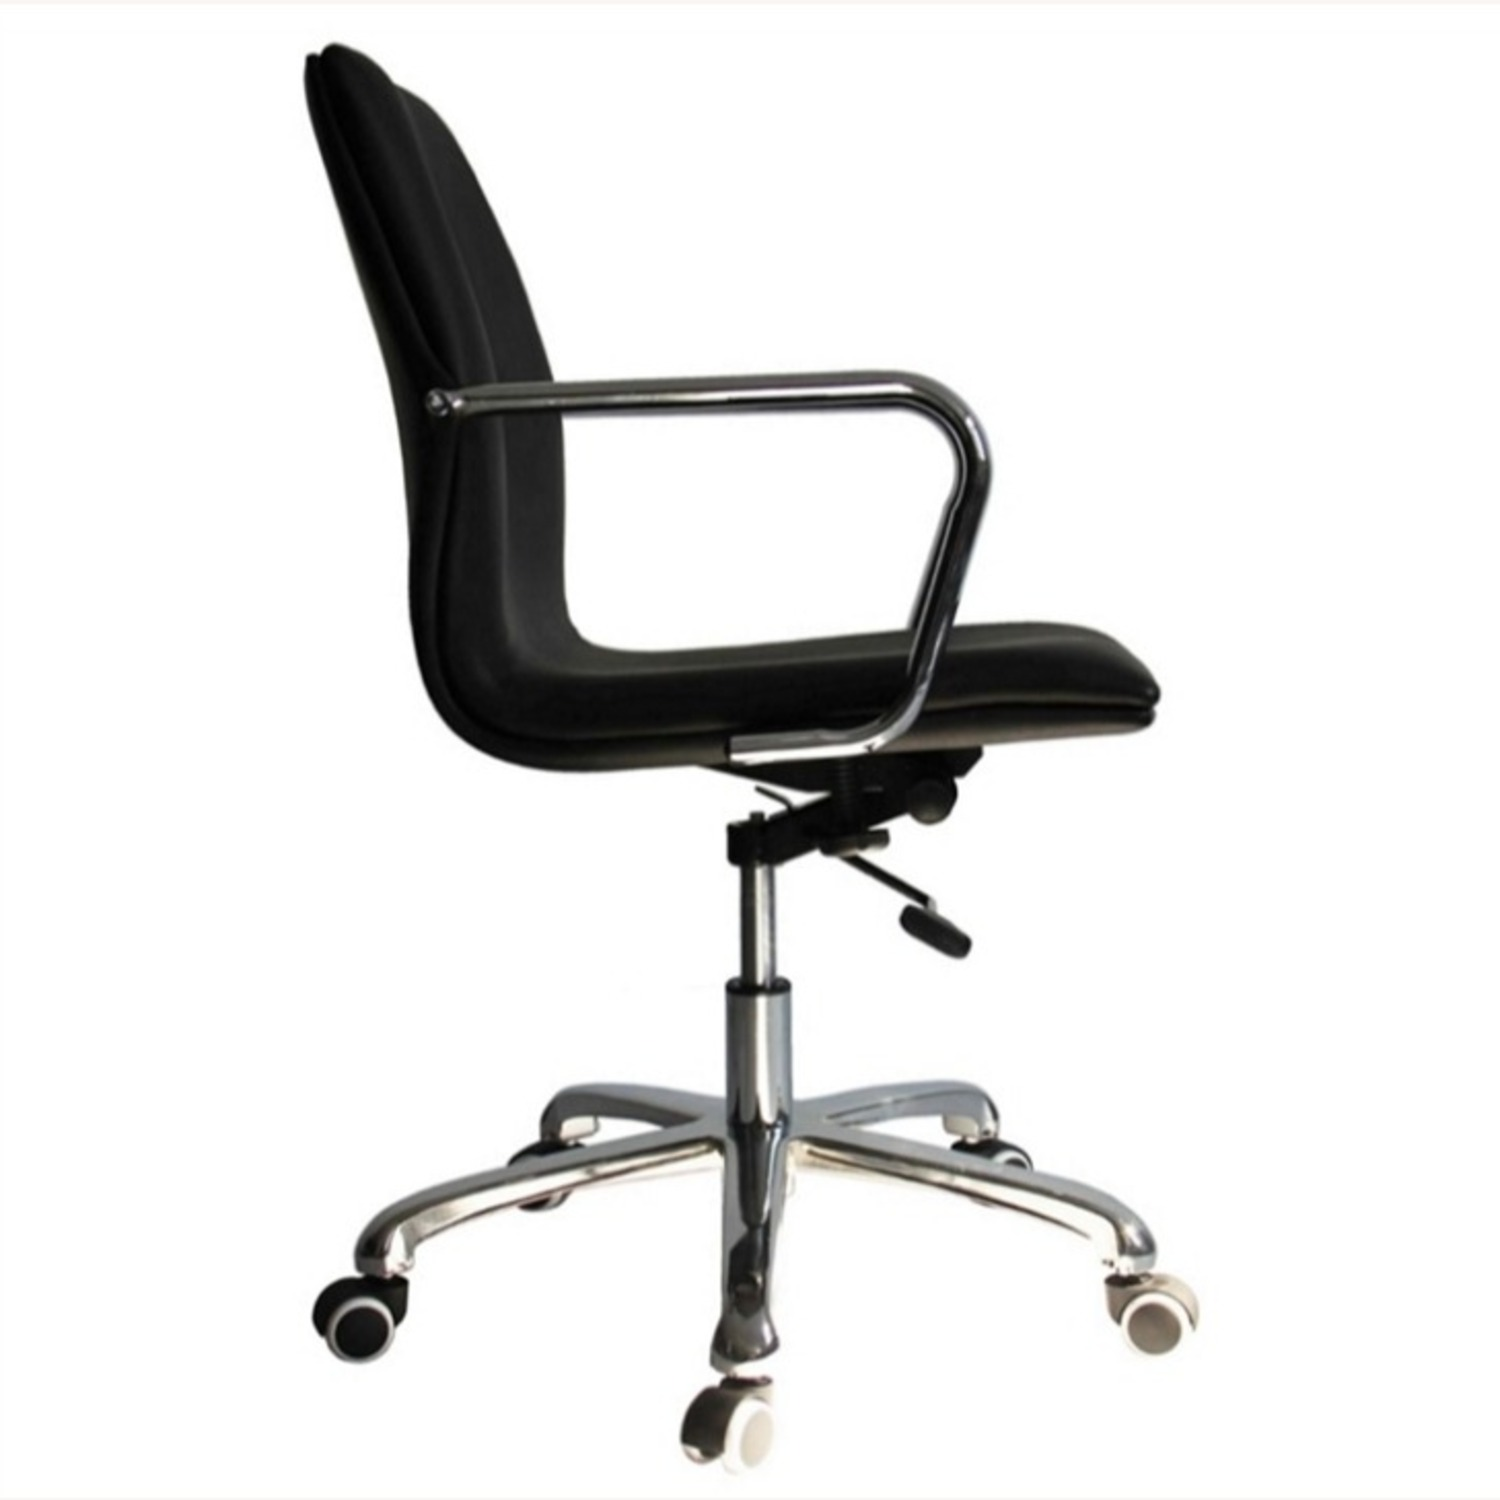 Office Chair In Mid-Back Black Leatherette Finish - image-1